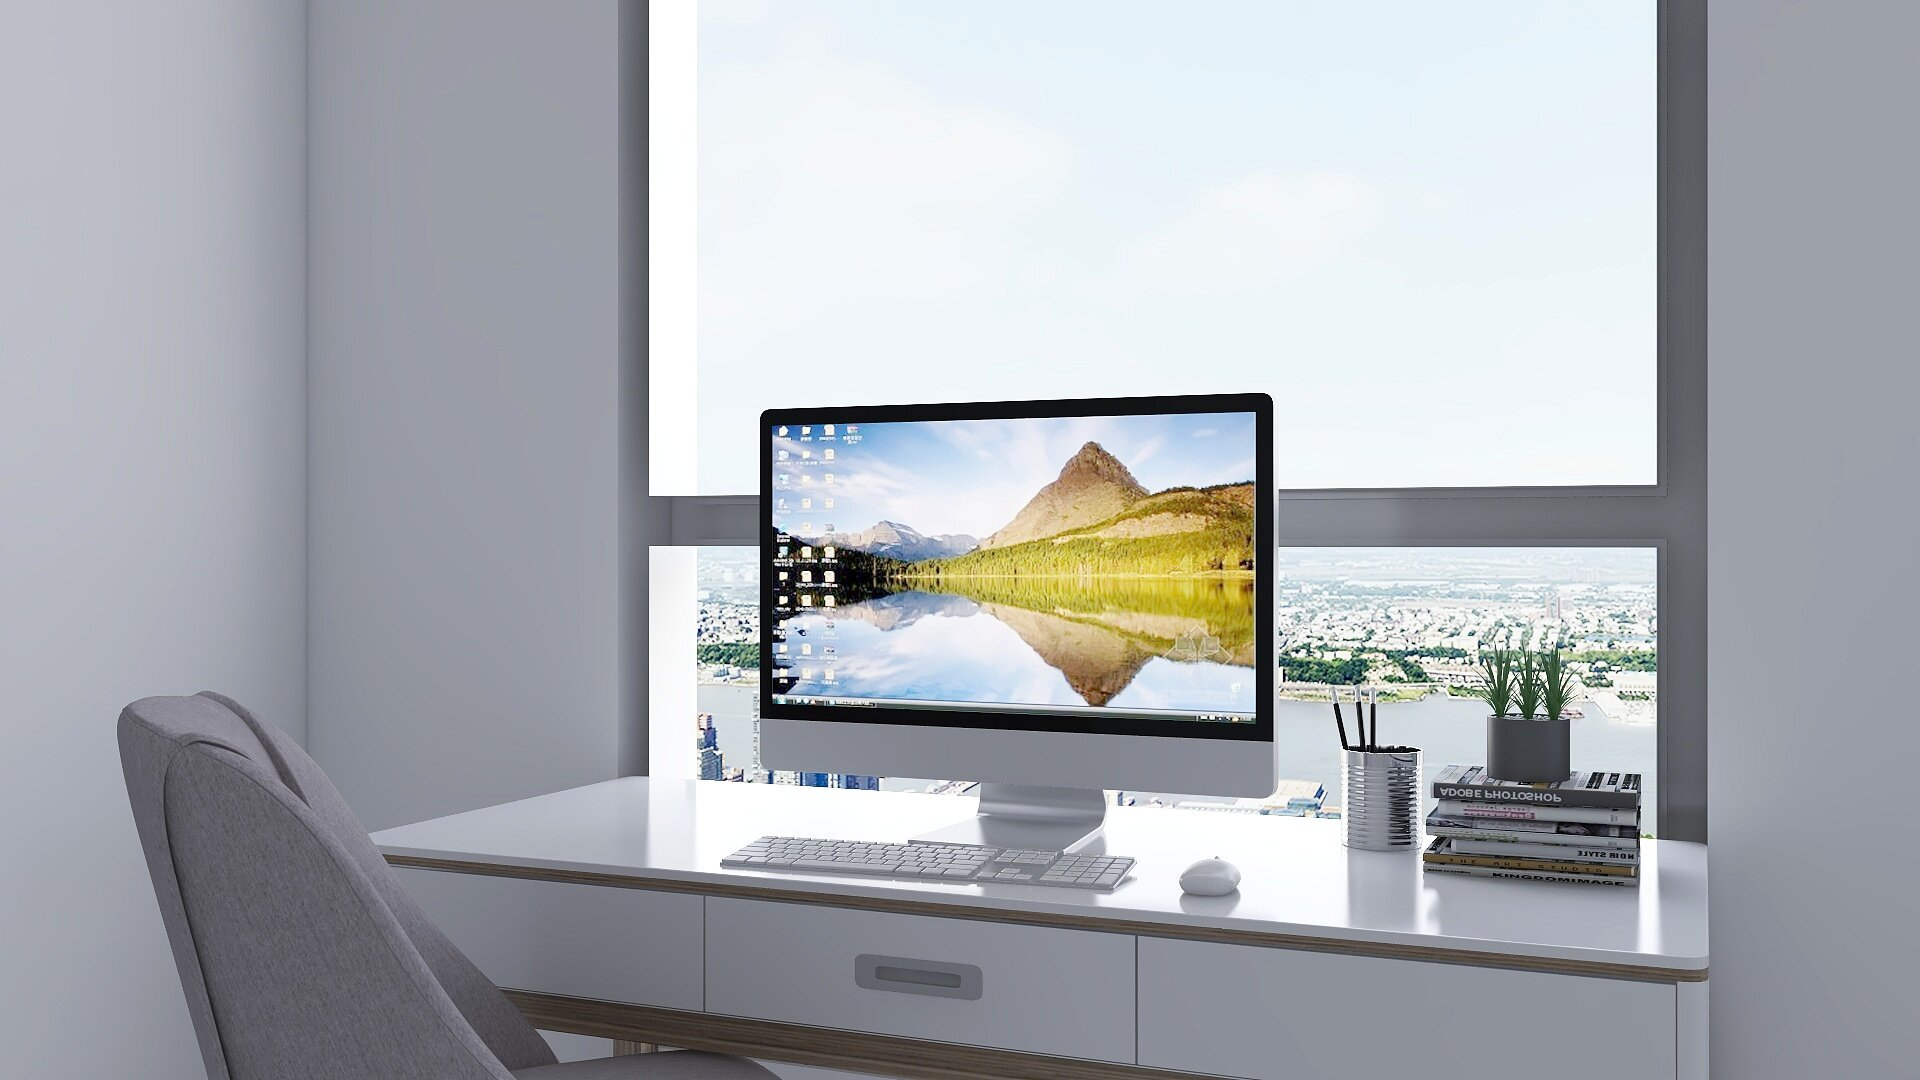 2.Maintain a clutter free area - I find that having an organized desk area and putting things away when I don't need it, helps keeps me focused. Even stacking things in a way to give you more desk room will keep your mind on task instead of the clutter on your desk.